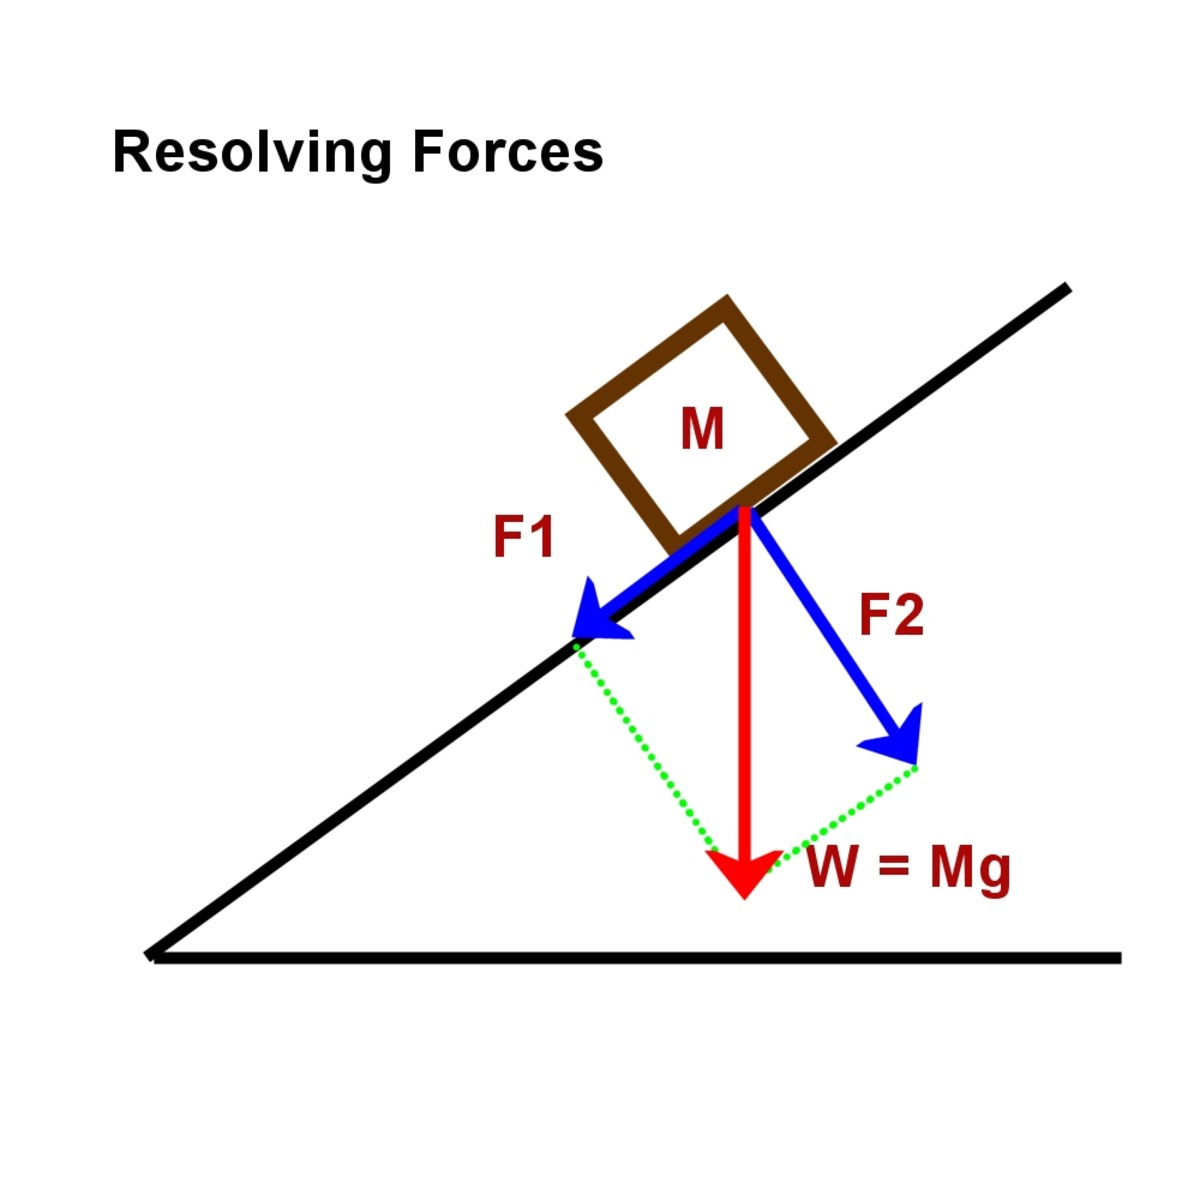 Resolving forces for a mass on a slope